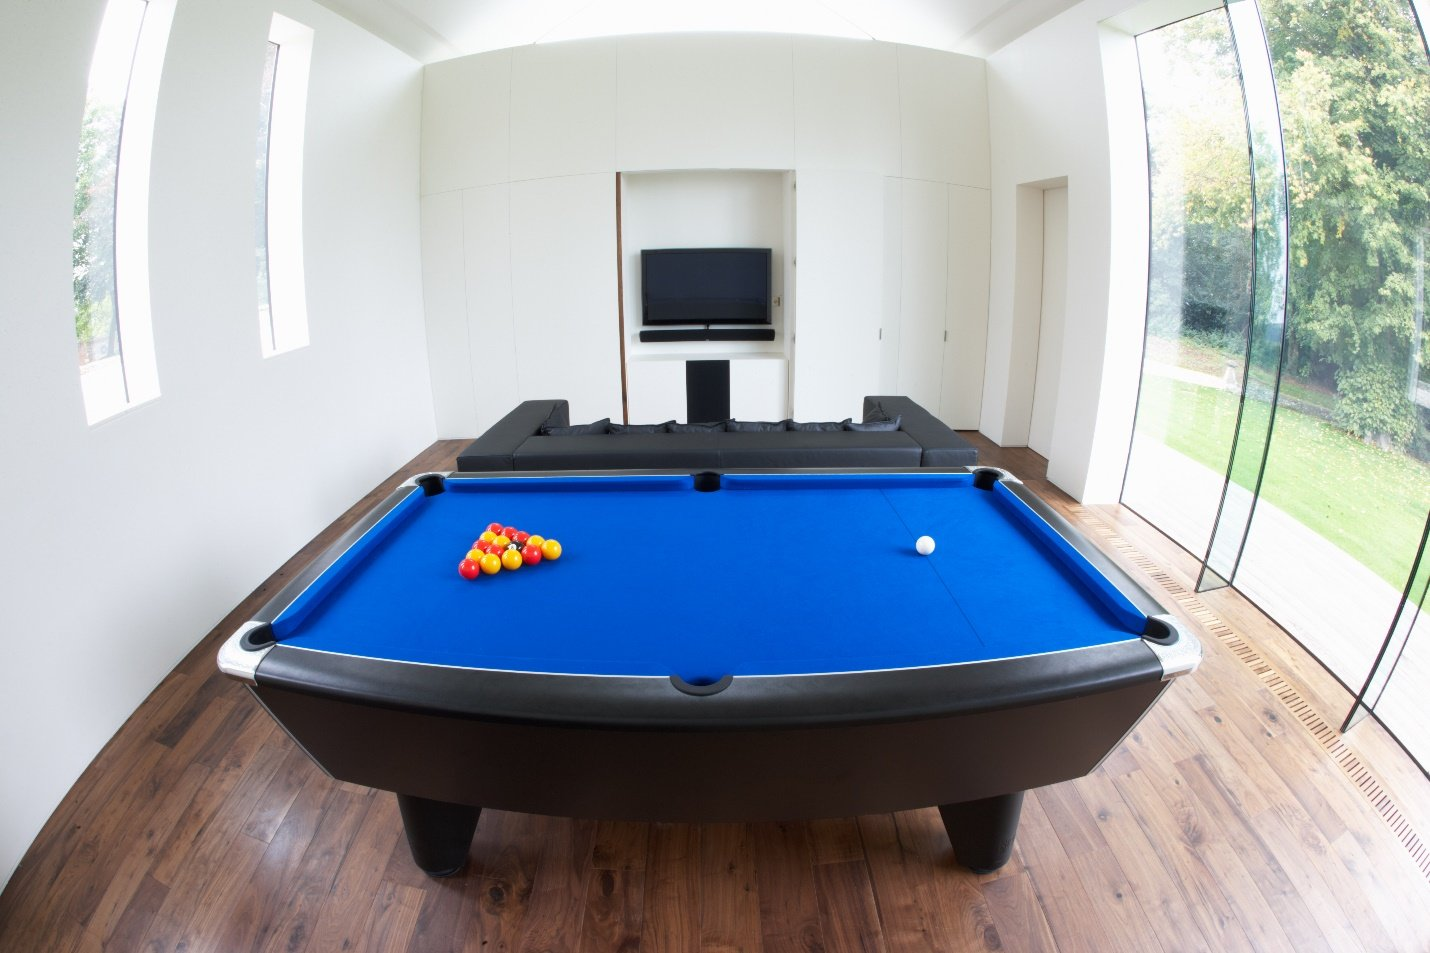 Temecula Valley Billiards Pool Tables Temecula CA - Pool table movers temecula